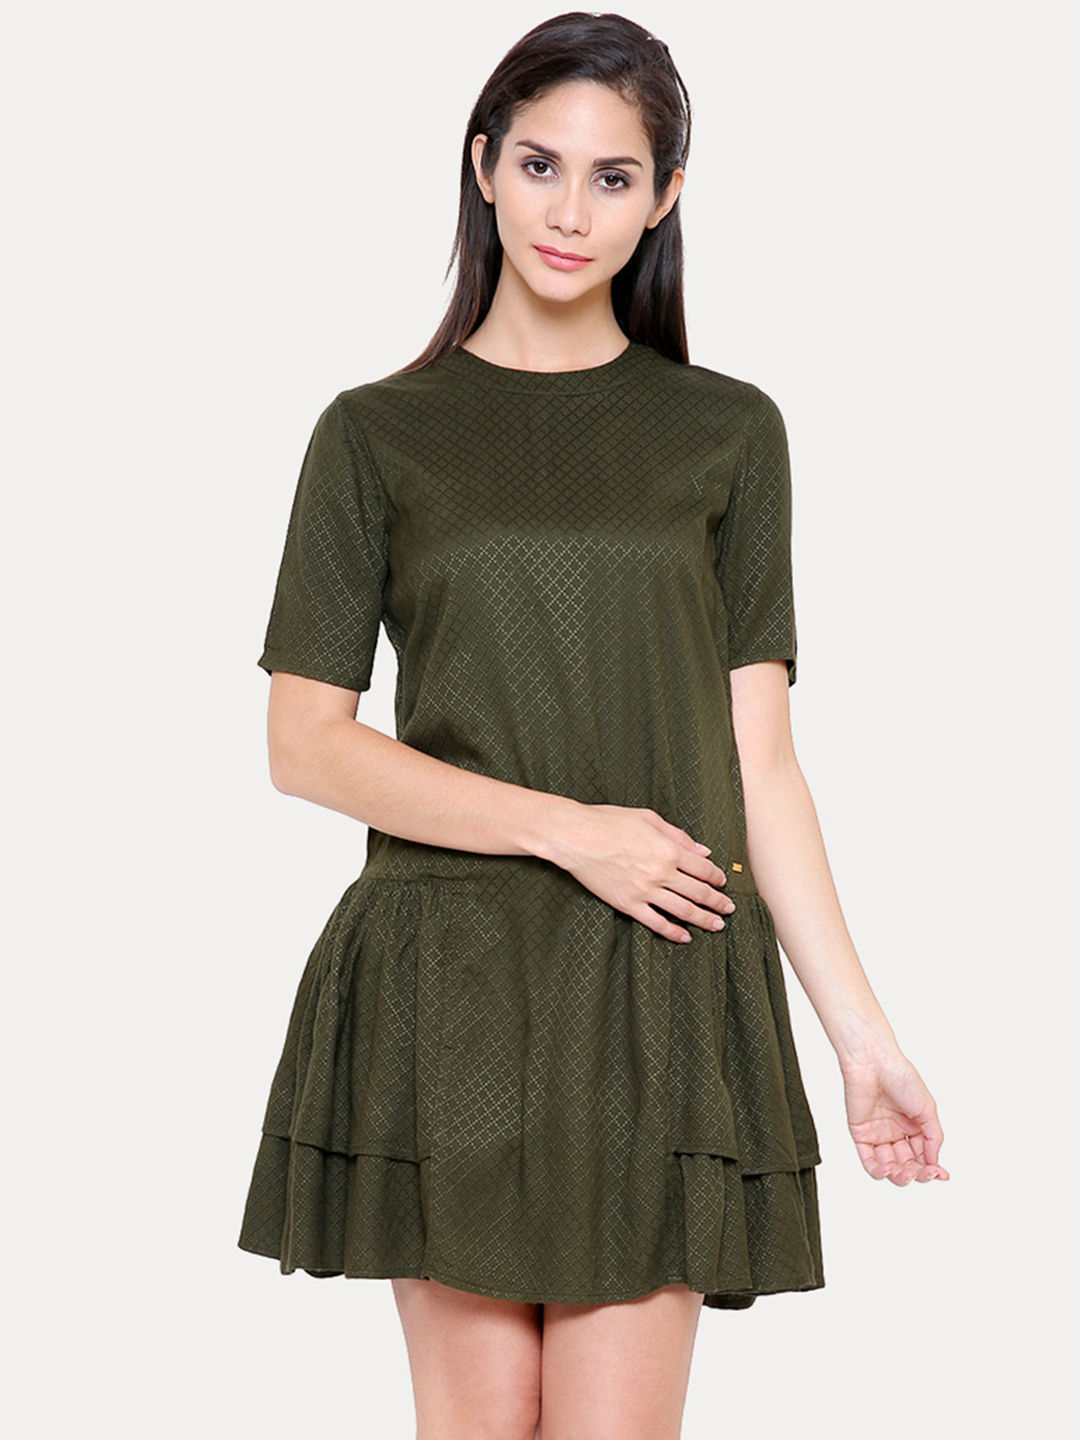 OLIVE SOLID SKATER DRESS